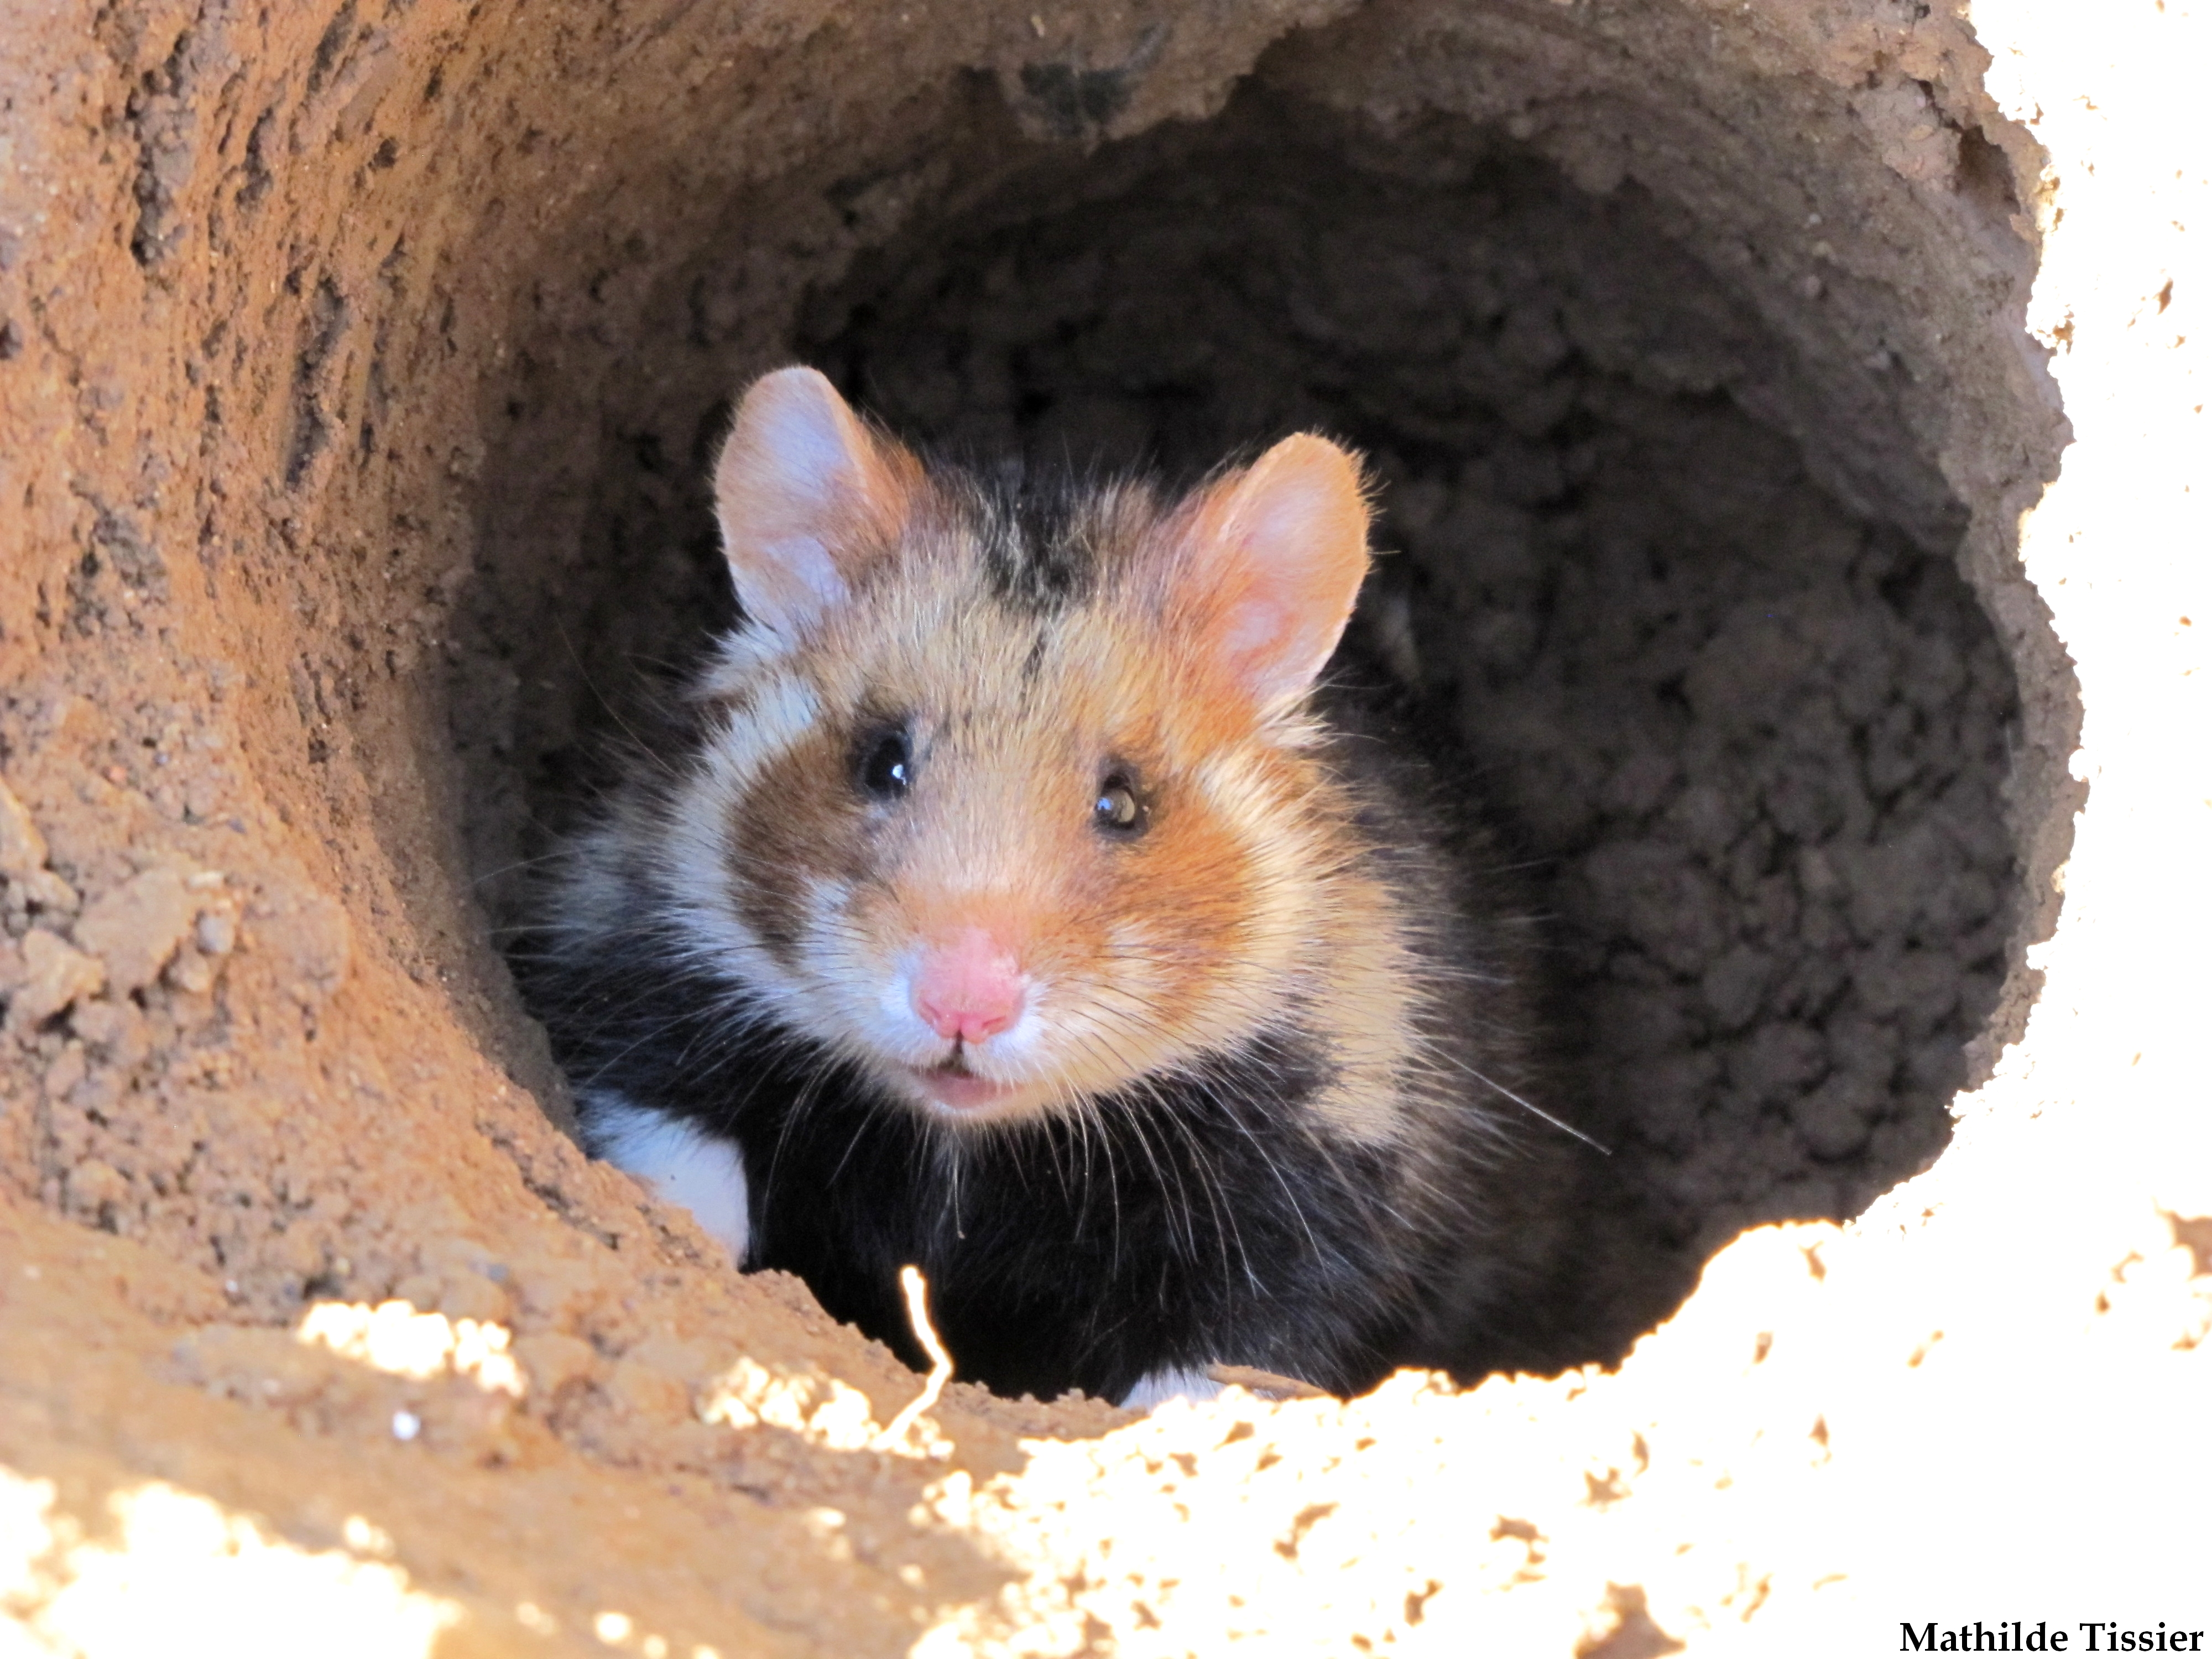 European hamsters are giving birth to fewer young (Mathilde Tissier/IPHC – LIFE Alister)